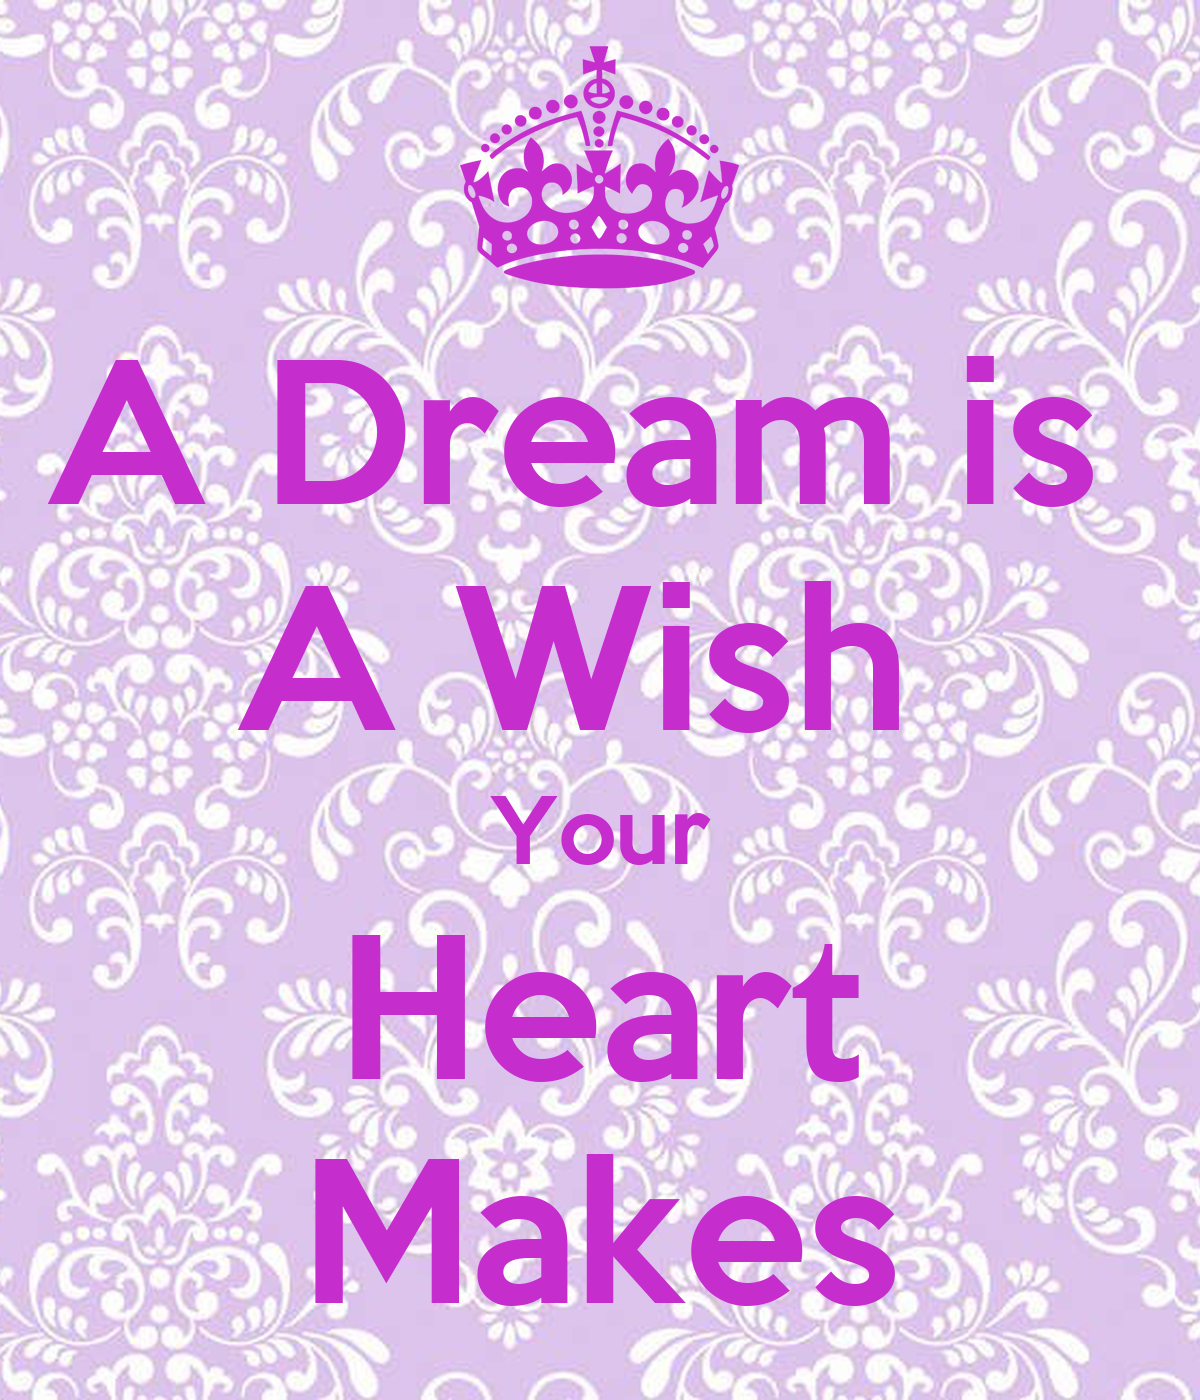 A Dream is A Wish Your Heart Makes Poster | erika | Keep ... A Dream Is A Wish Your Heart Makes Images